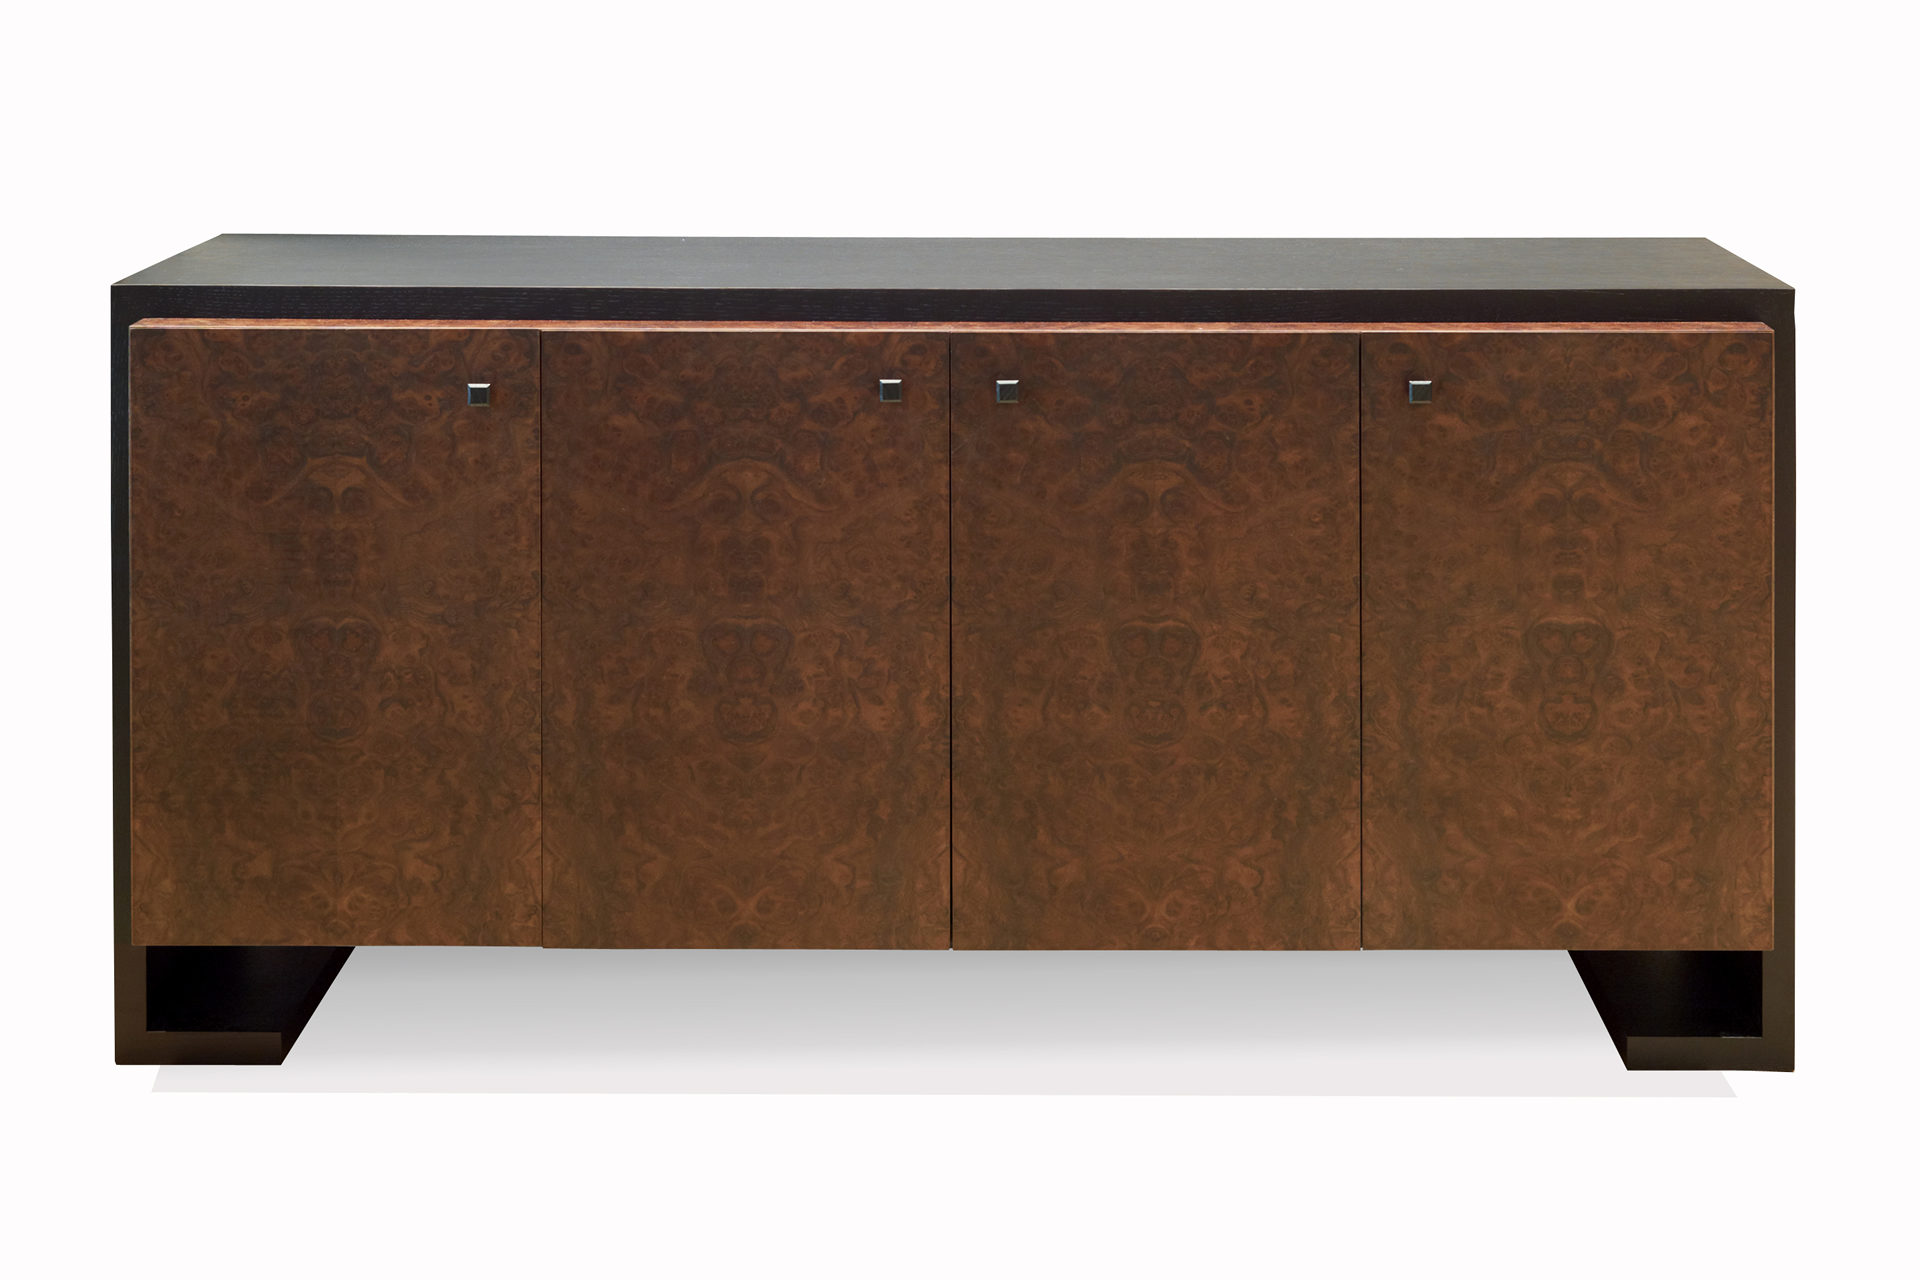 Large solid oak sideboard modern design furniture